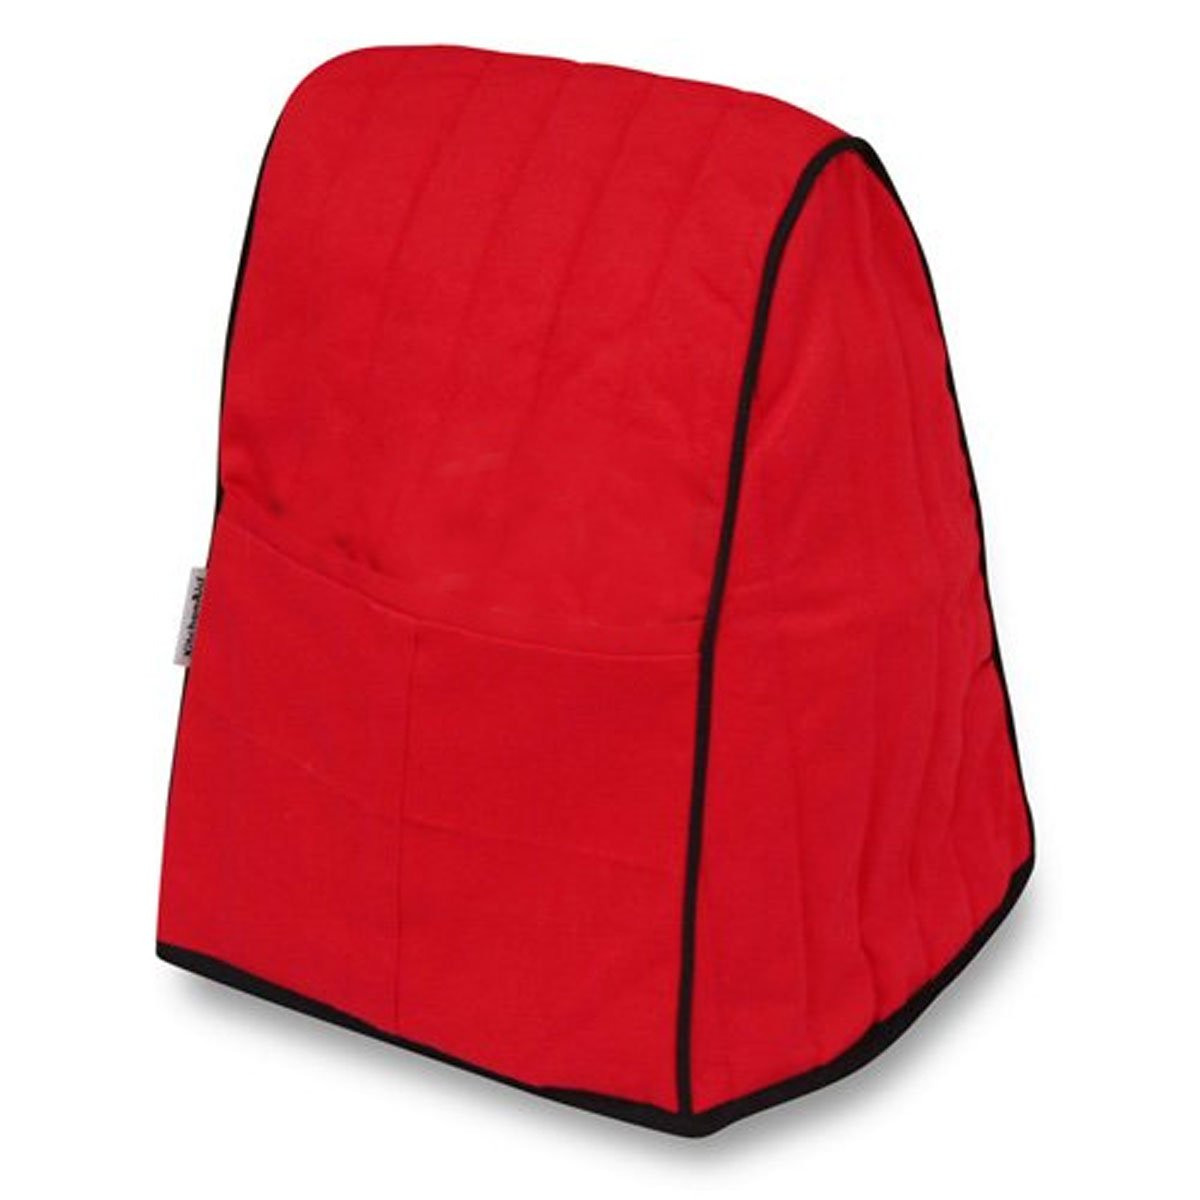 KitchenAid Stand Mixer Cover, Empire Red , New, Free Shipping | eBay